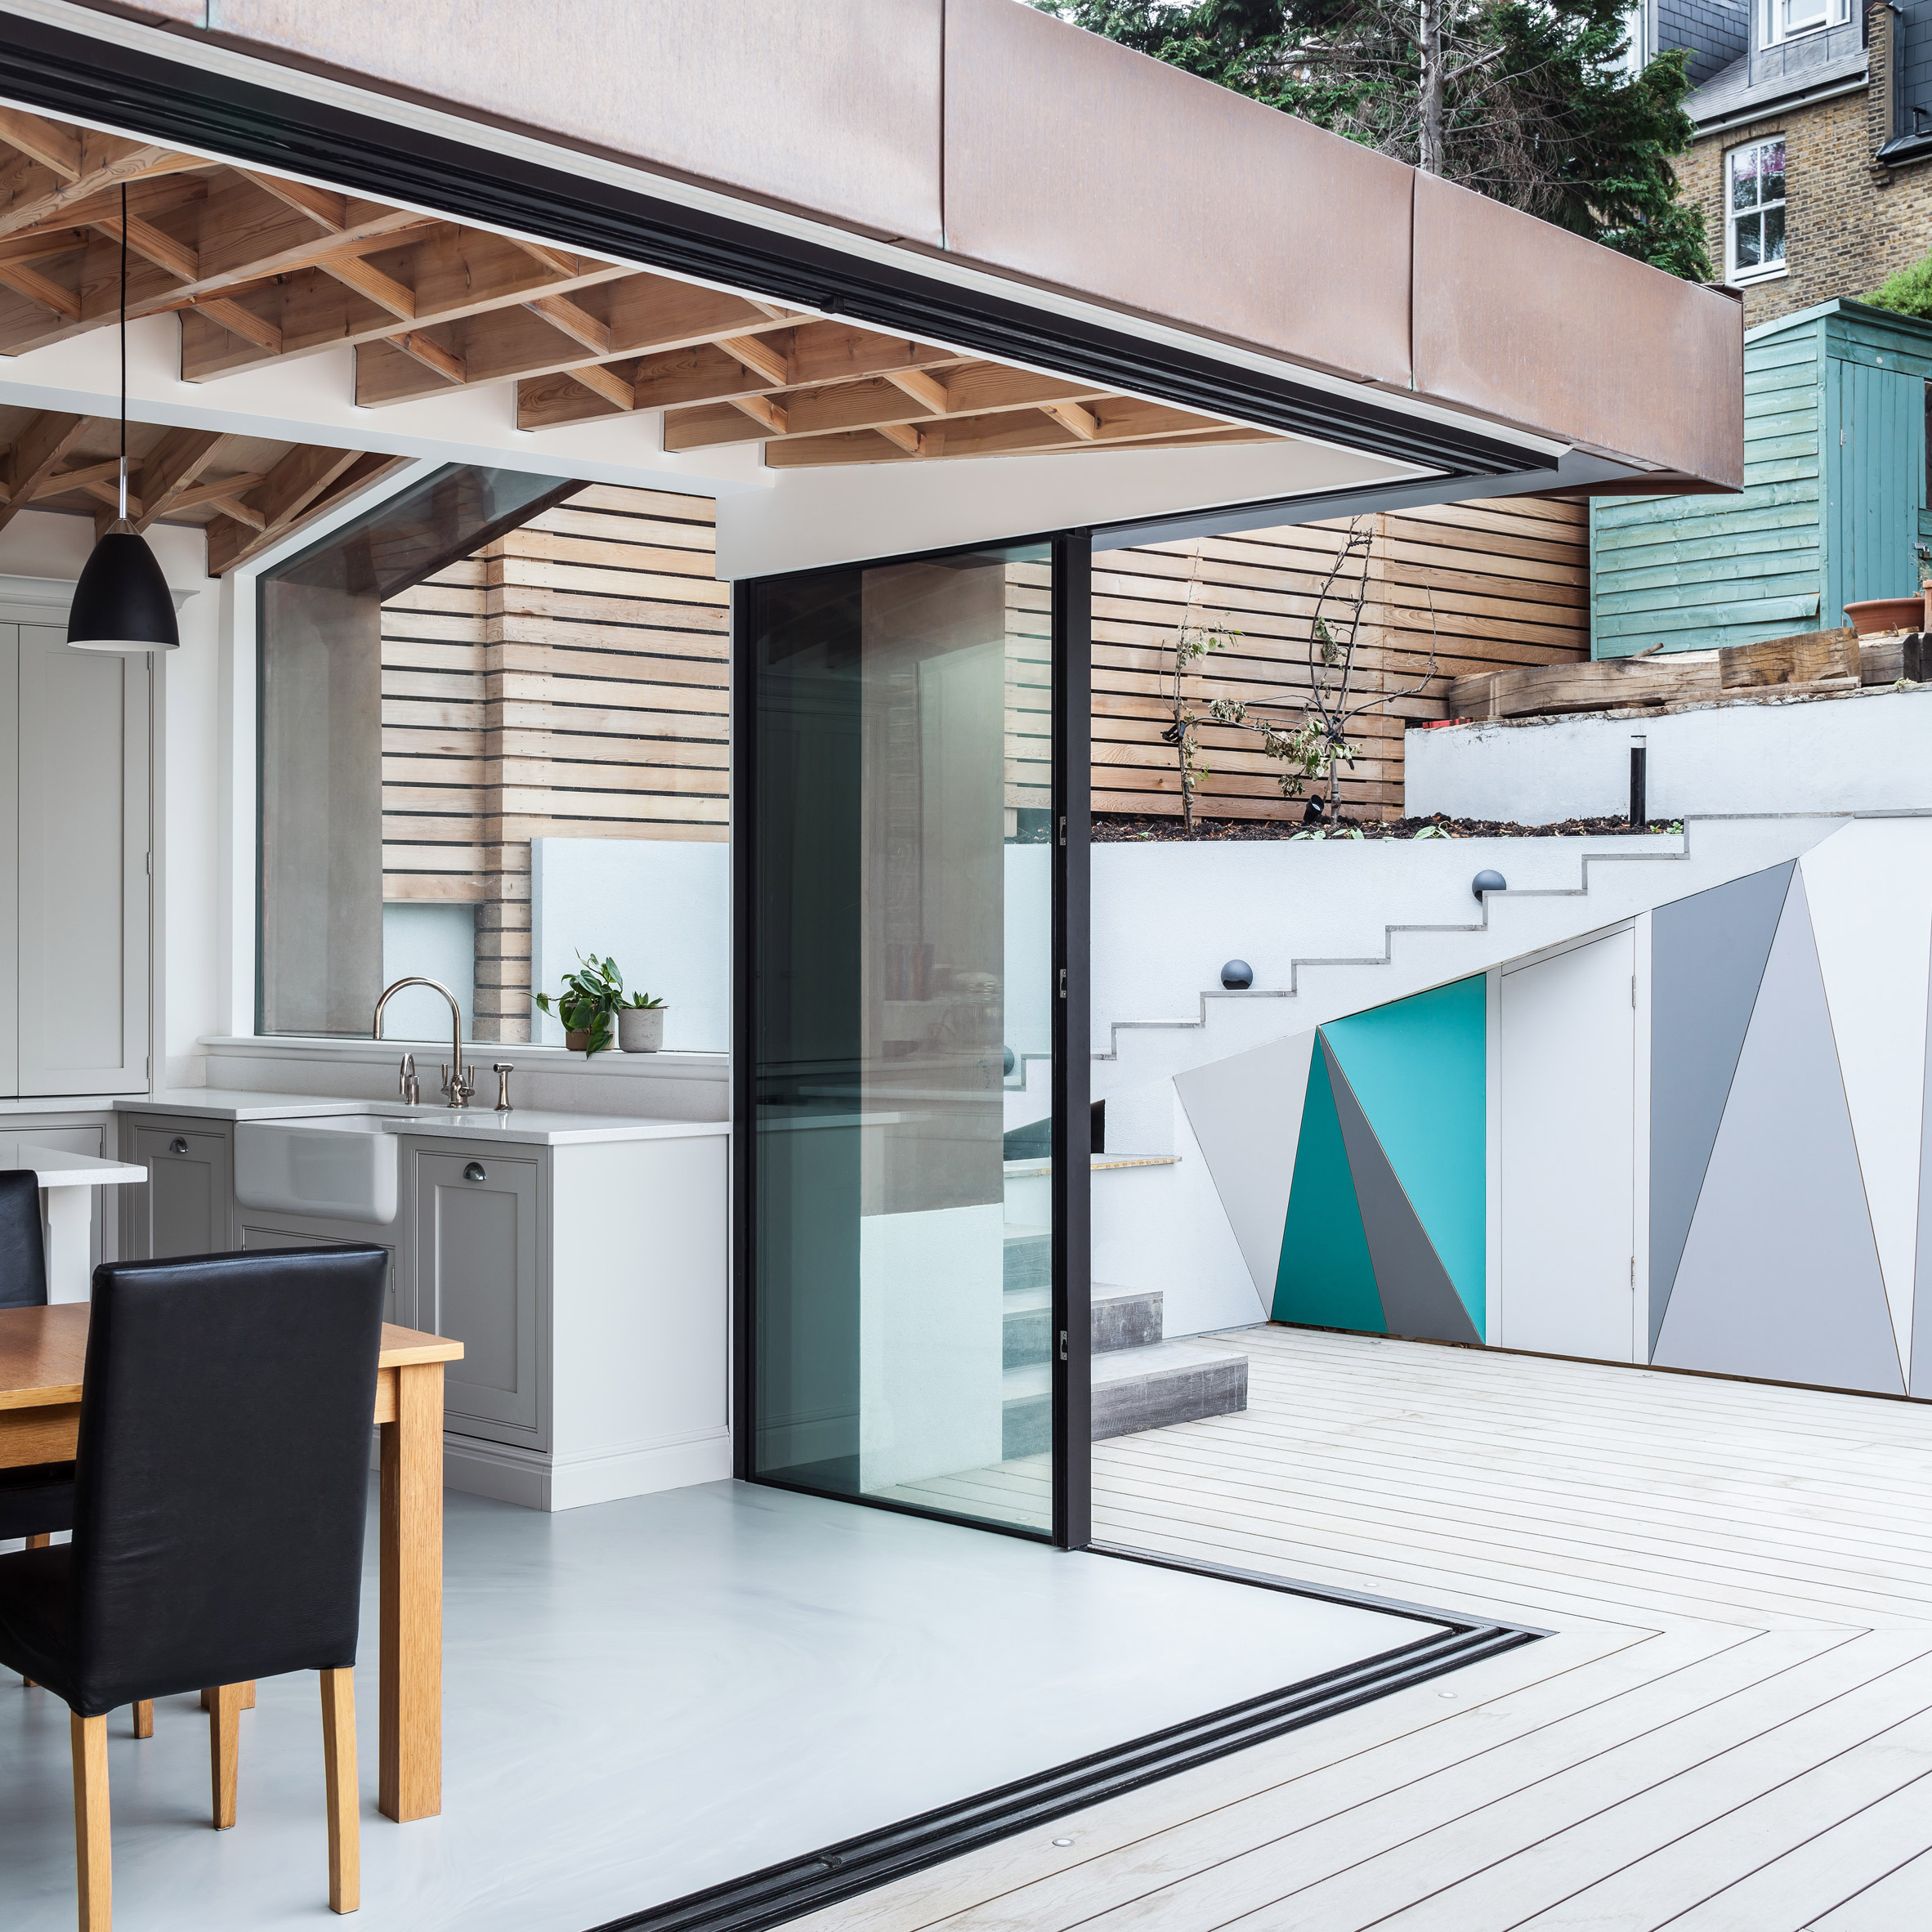 London's best new house extensions revealed in 2019 shortlist for Don't Move, Improve!